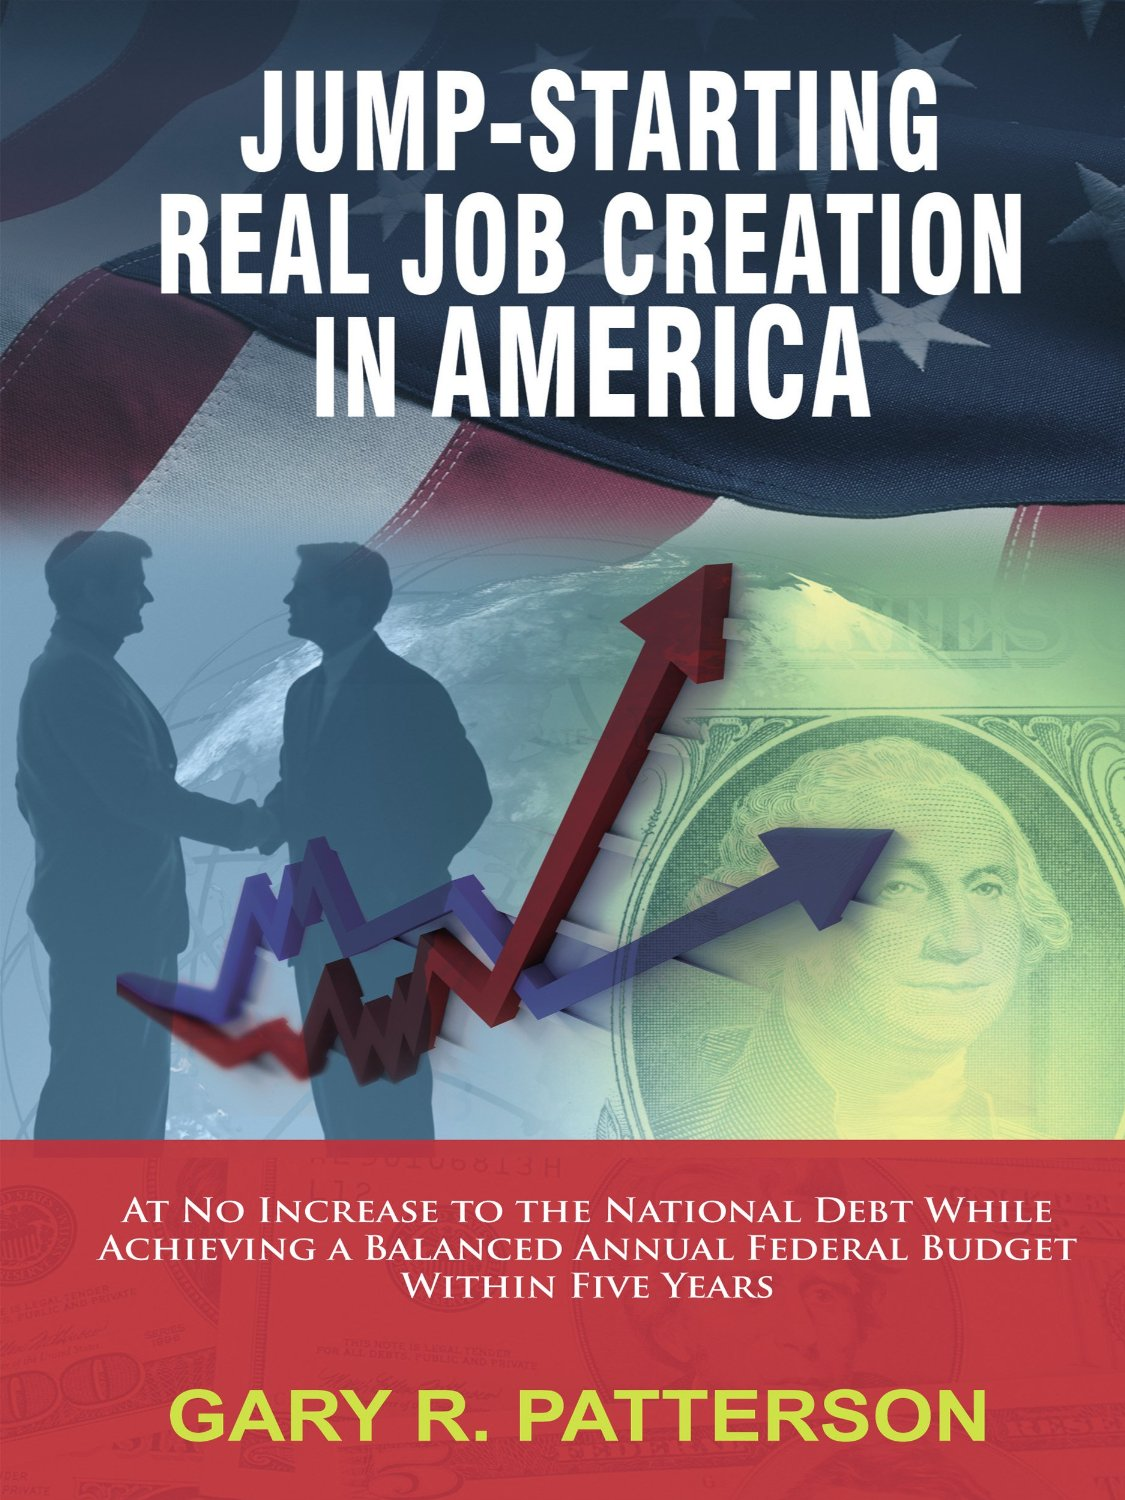 Jump Starting Real Job Creation.jpg